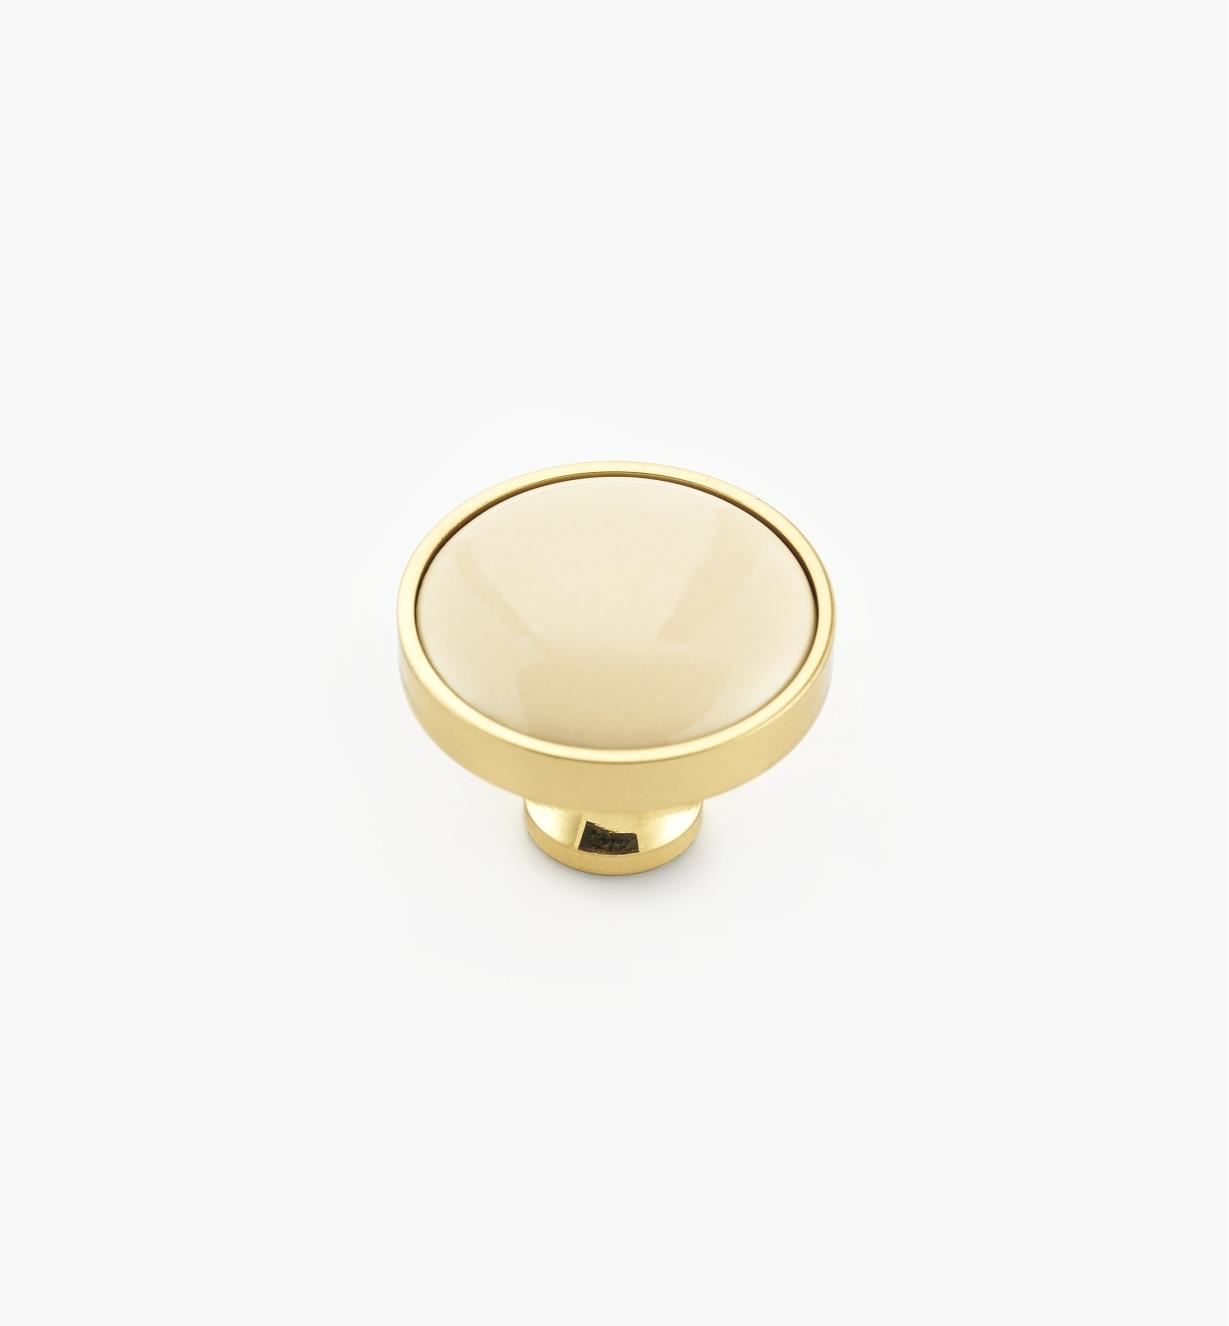 00W7625 - Polished Brass/Almond Knob